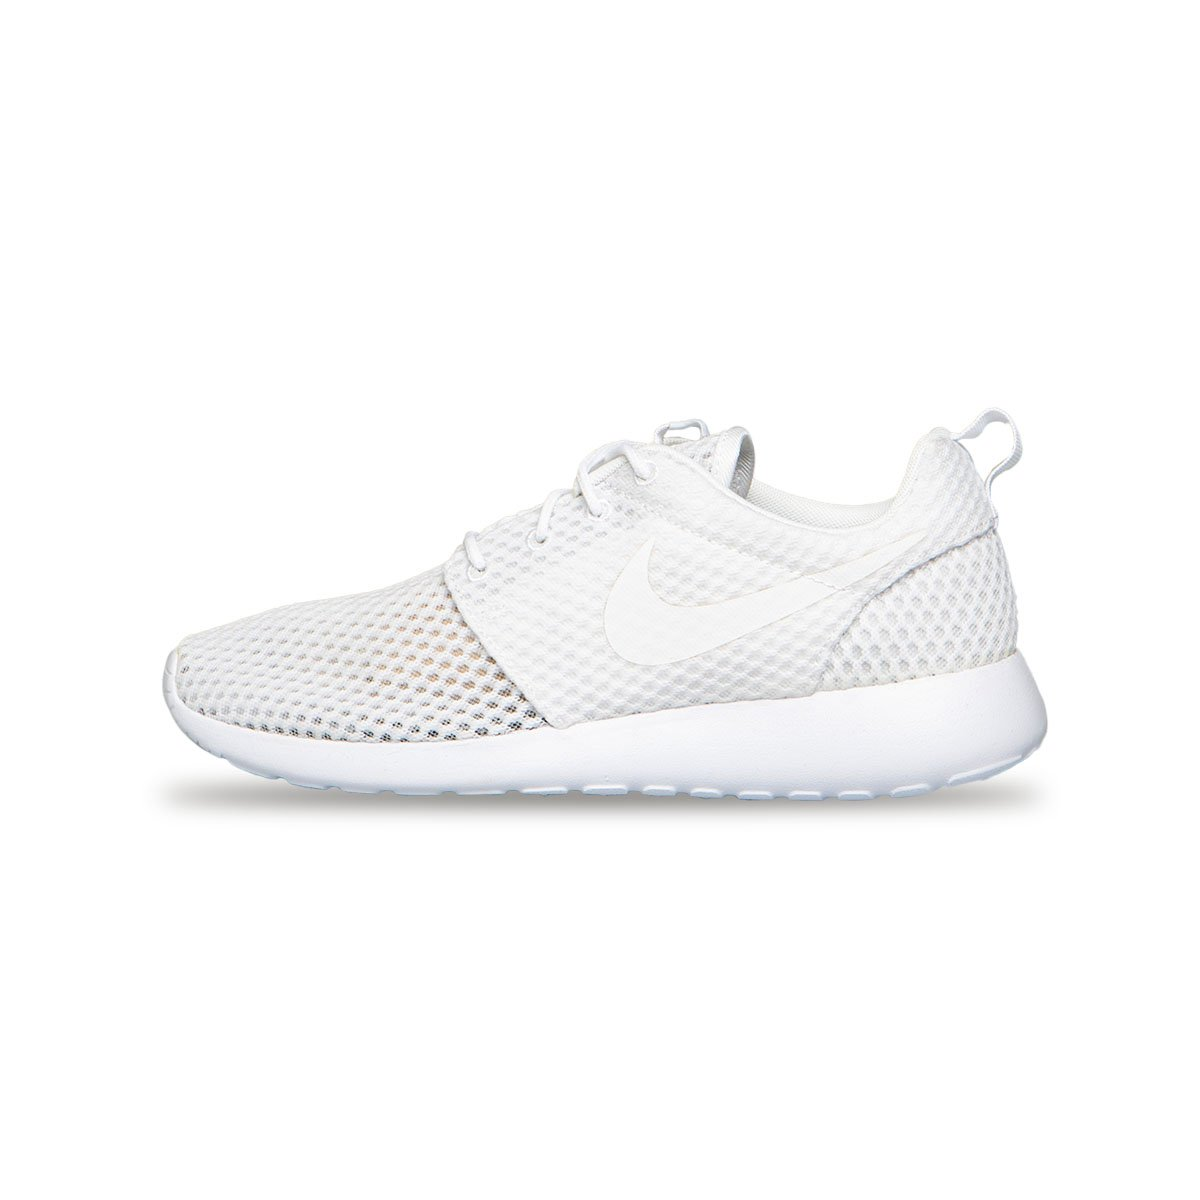 Nike Roshe One black / anthracite - sail (511881-010) | Bludshop.com